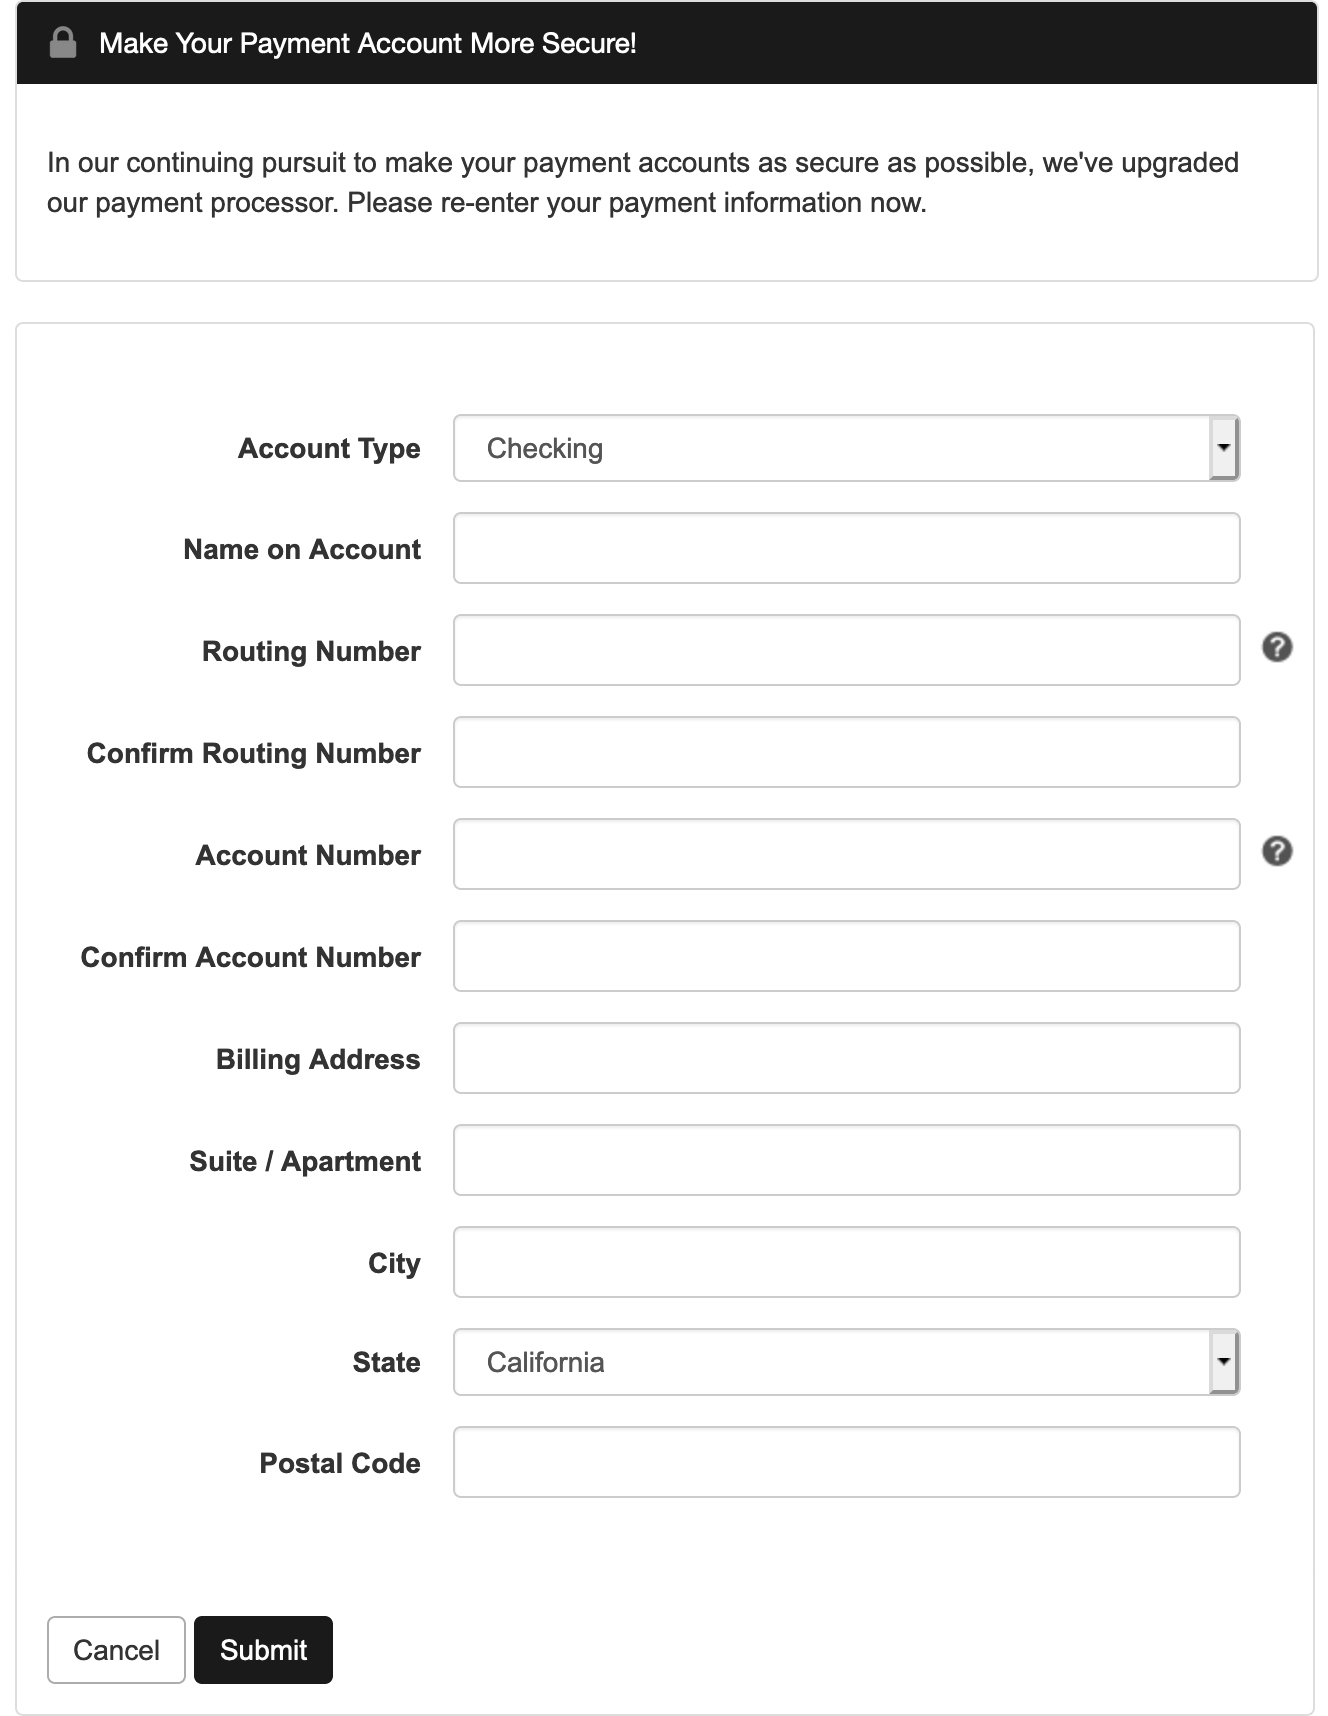 Chase Payment Gateway for Green Filing Fees